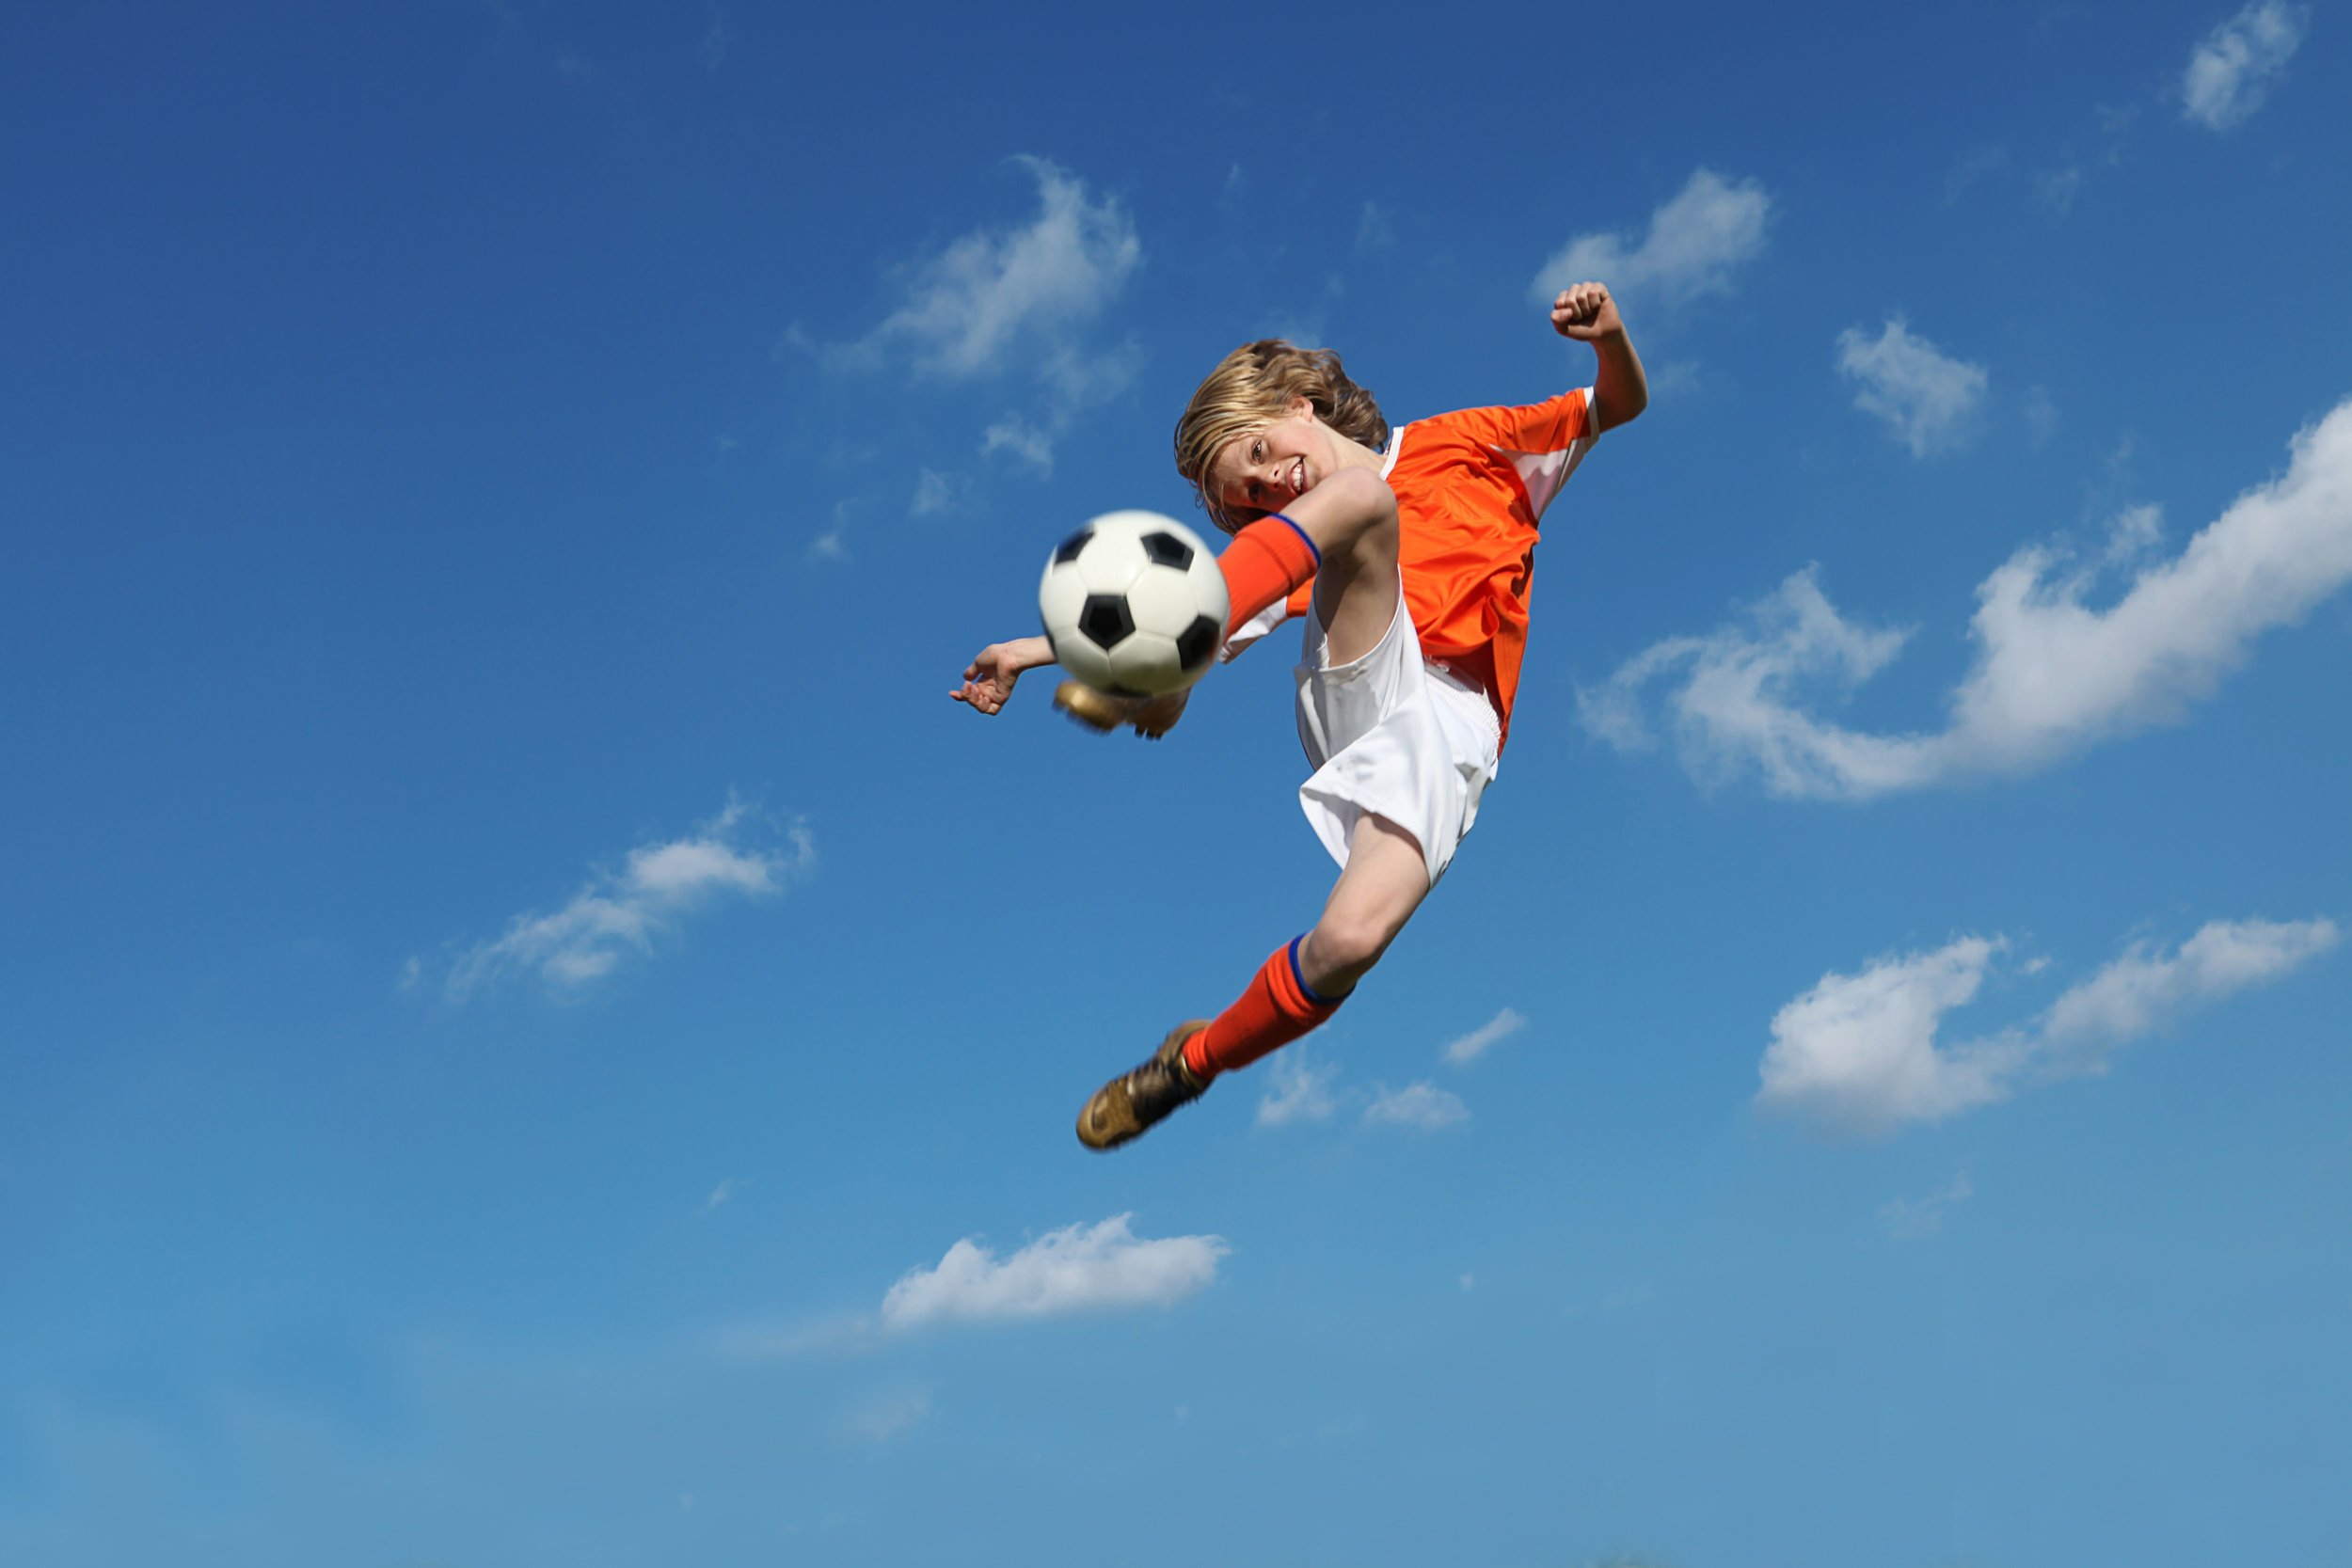 kid-kicking-soccer-in-air.jpg